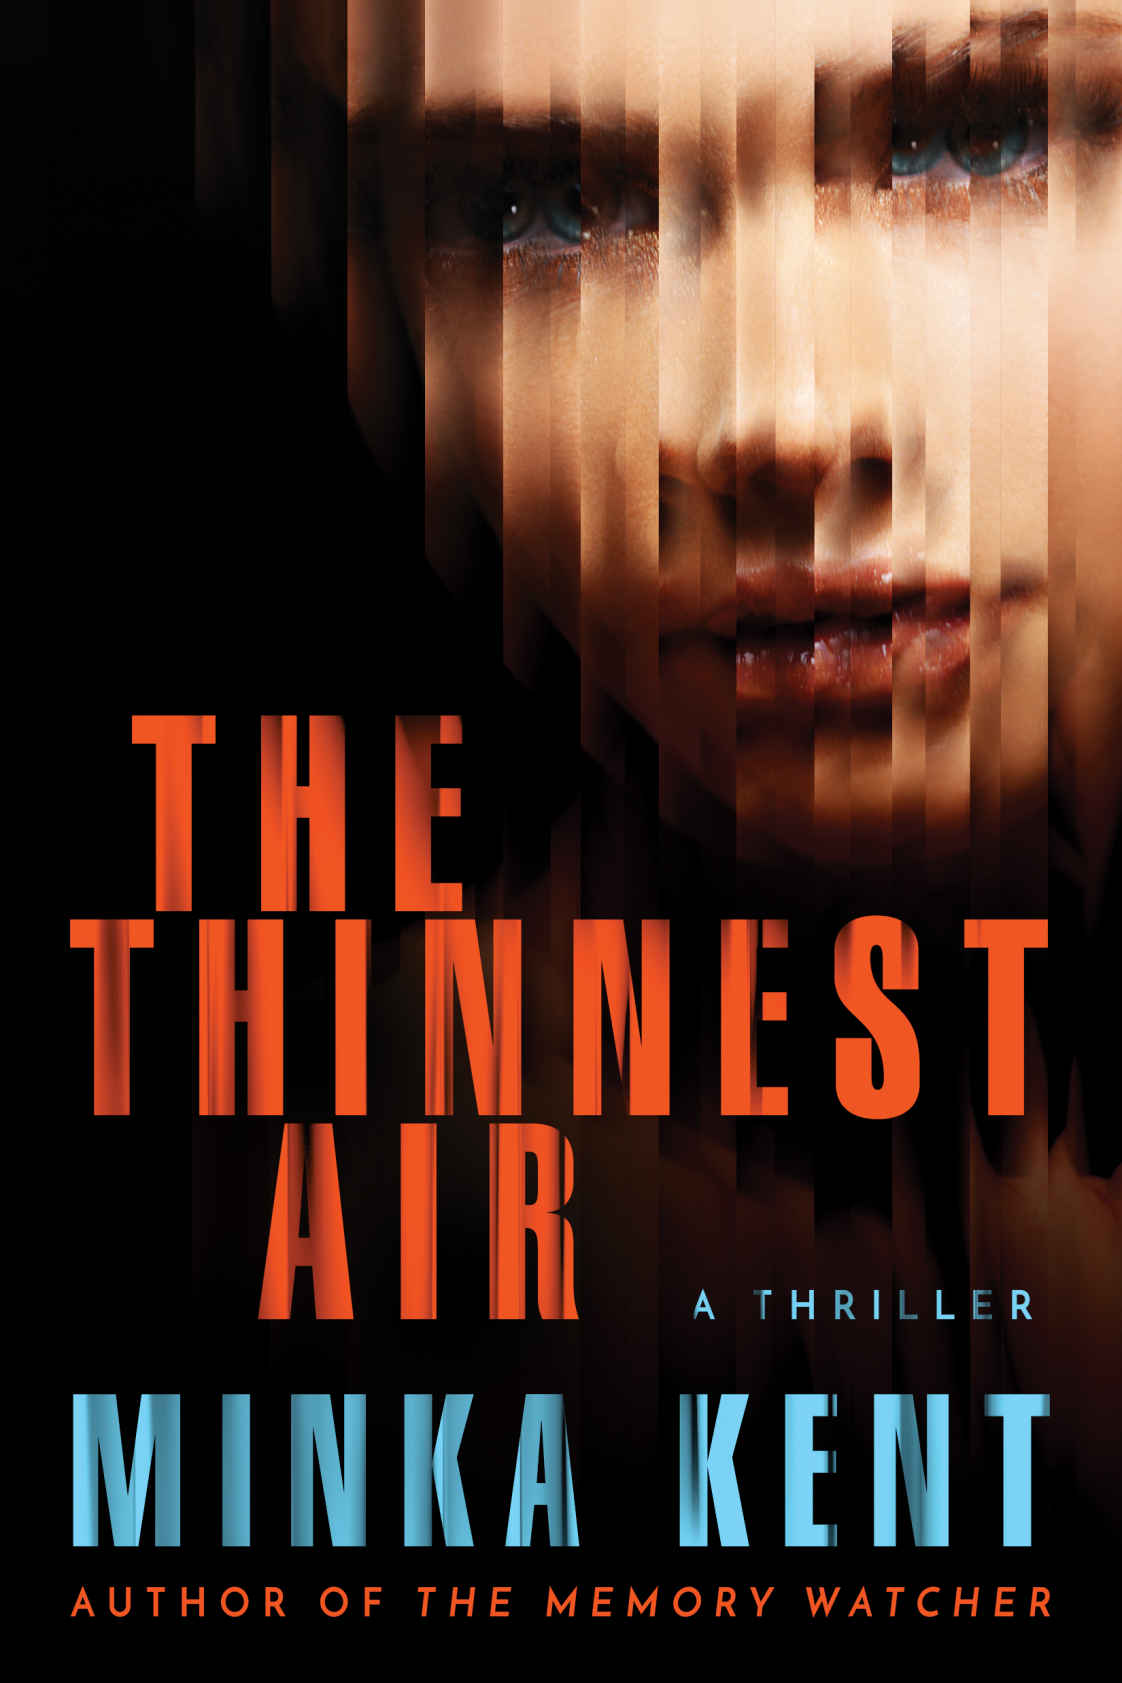 The Thinnest Air - Minka Kent [kindle] [mobi]